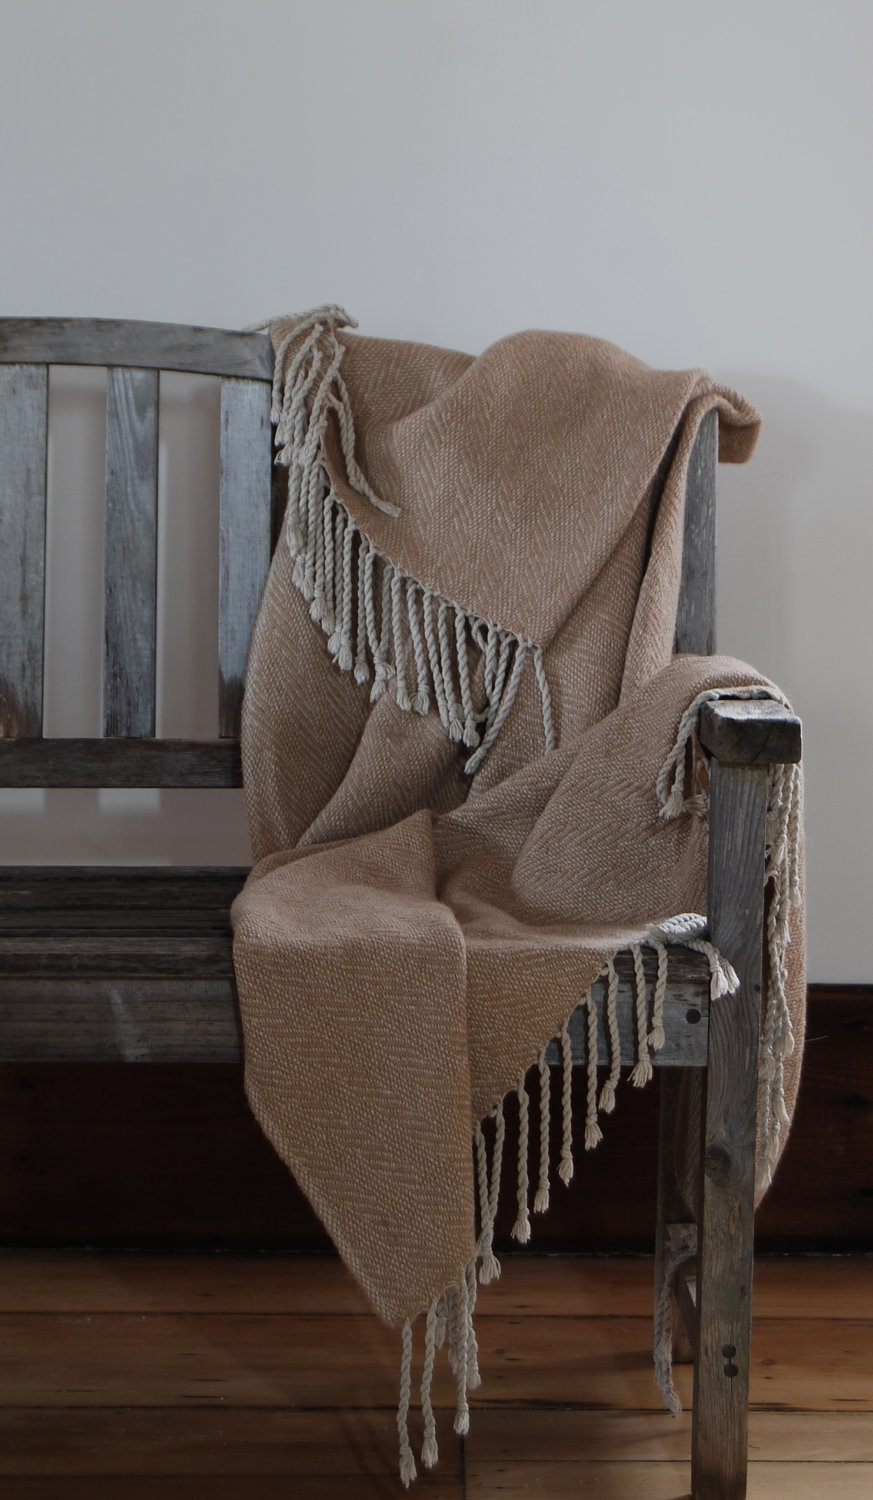 hand-made throw blanket on wood bench - il_fullxfull.334861616